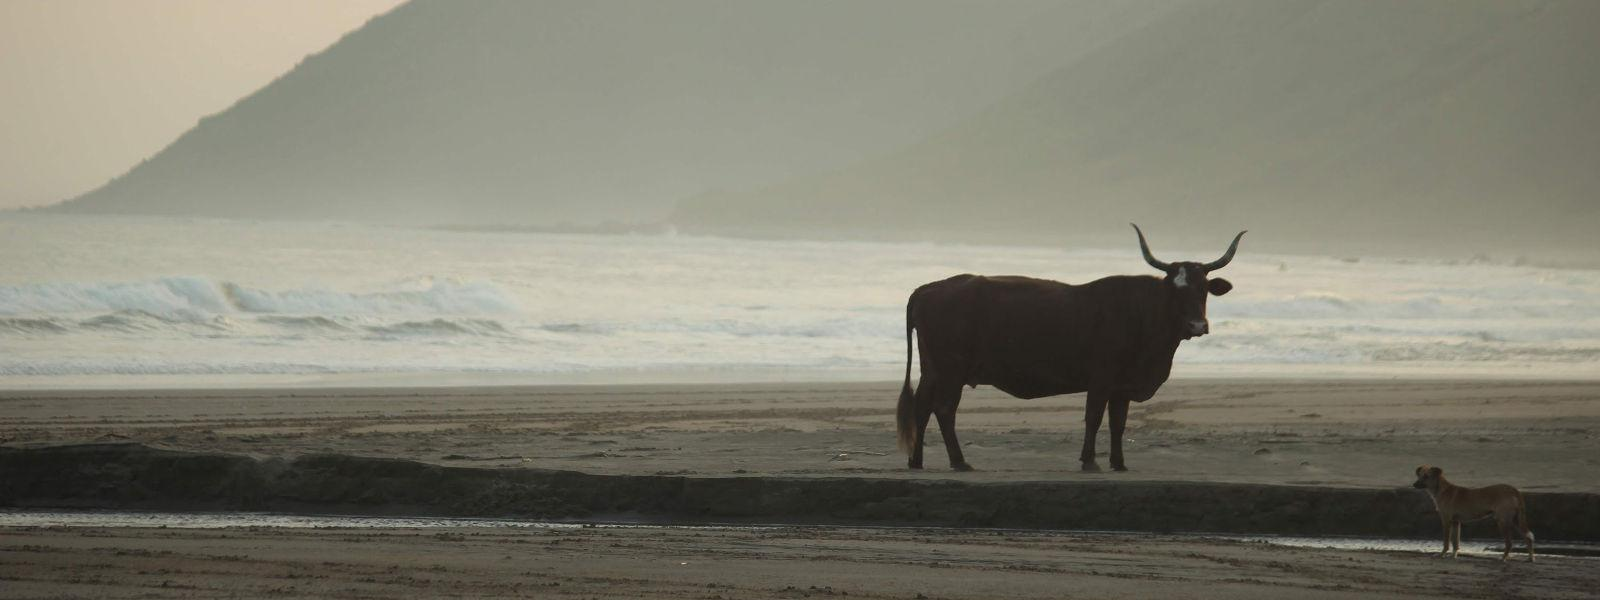 Cow and dog on  a beach - Wild Coast scene